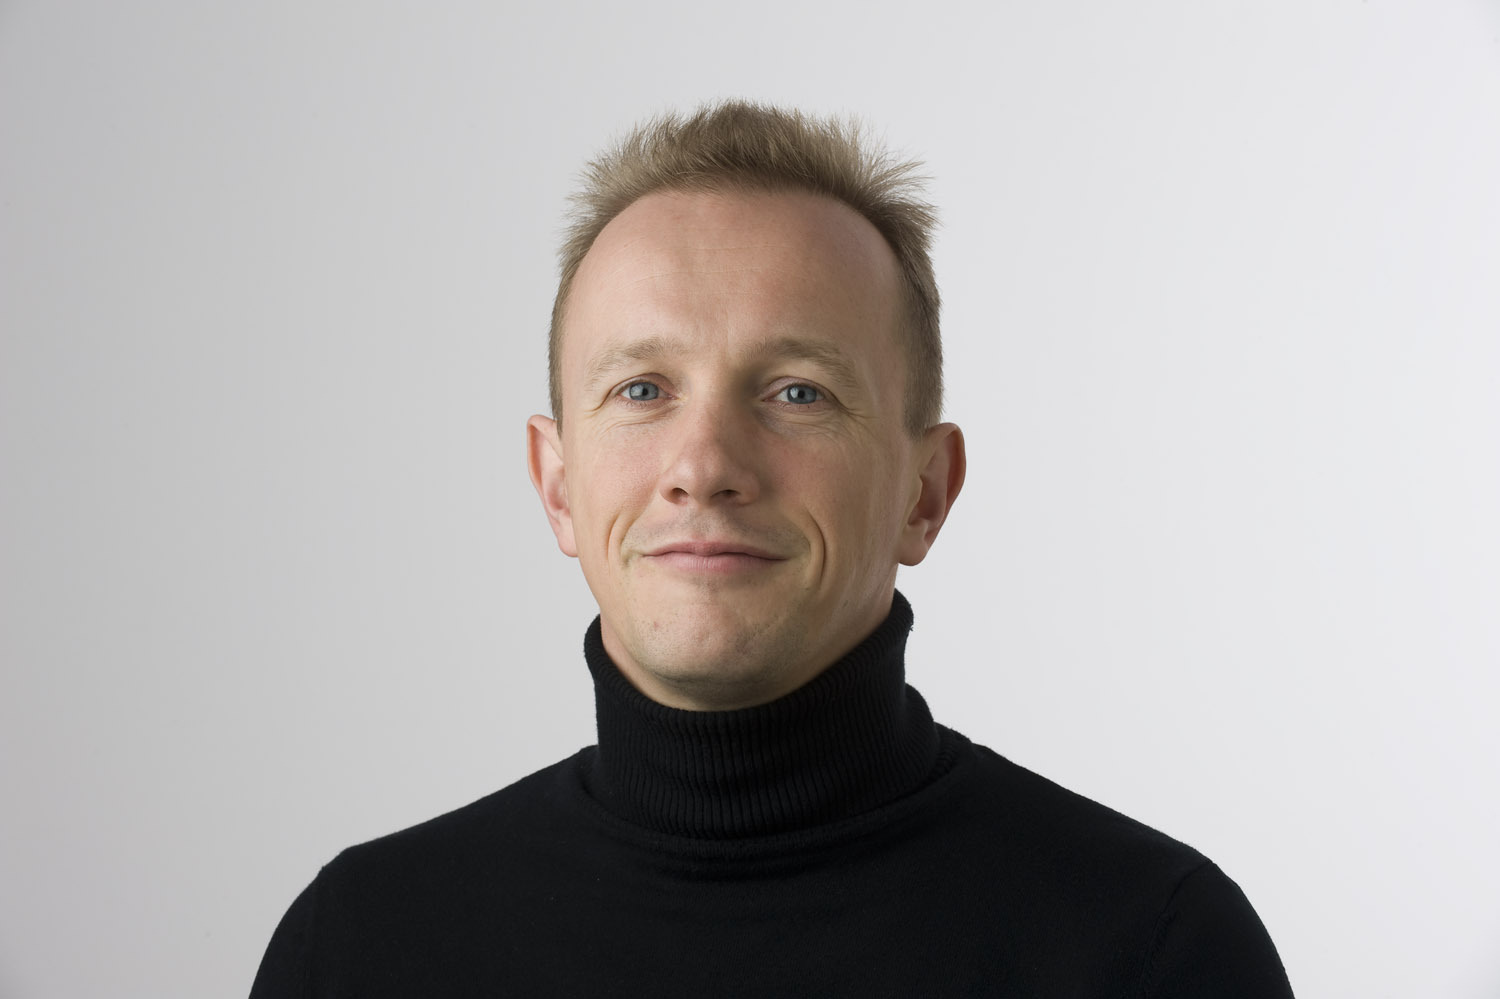 Profile picture of Frederik Vervaet